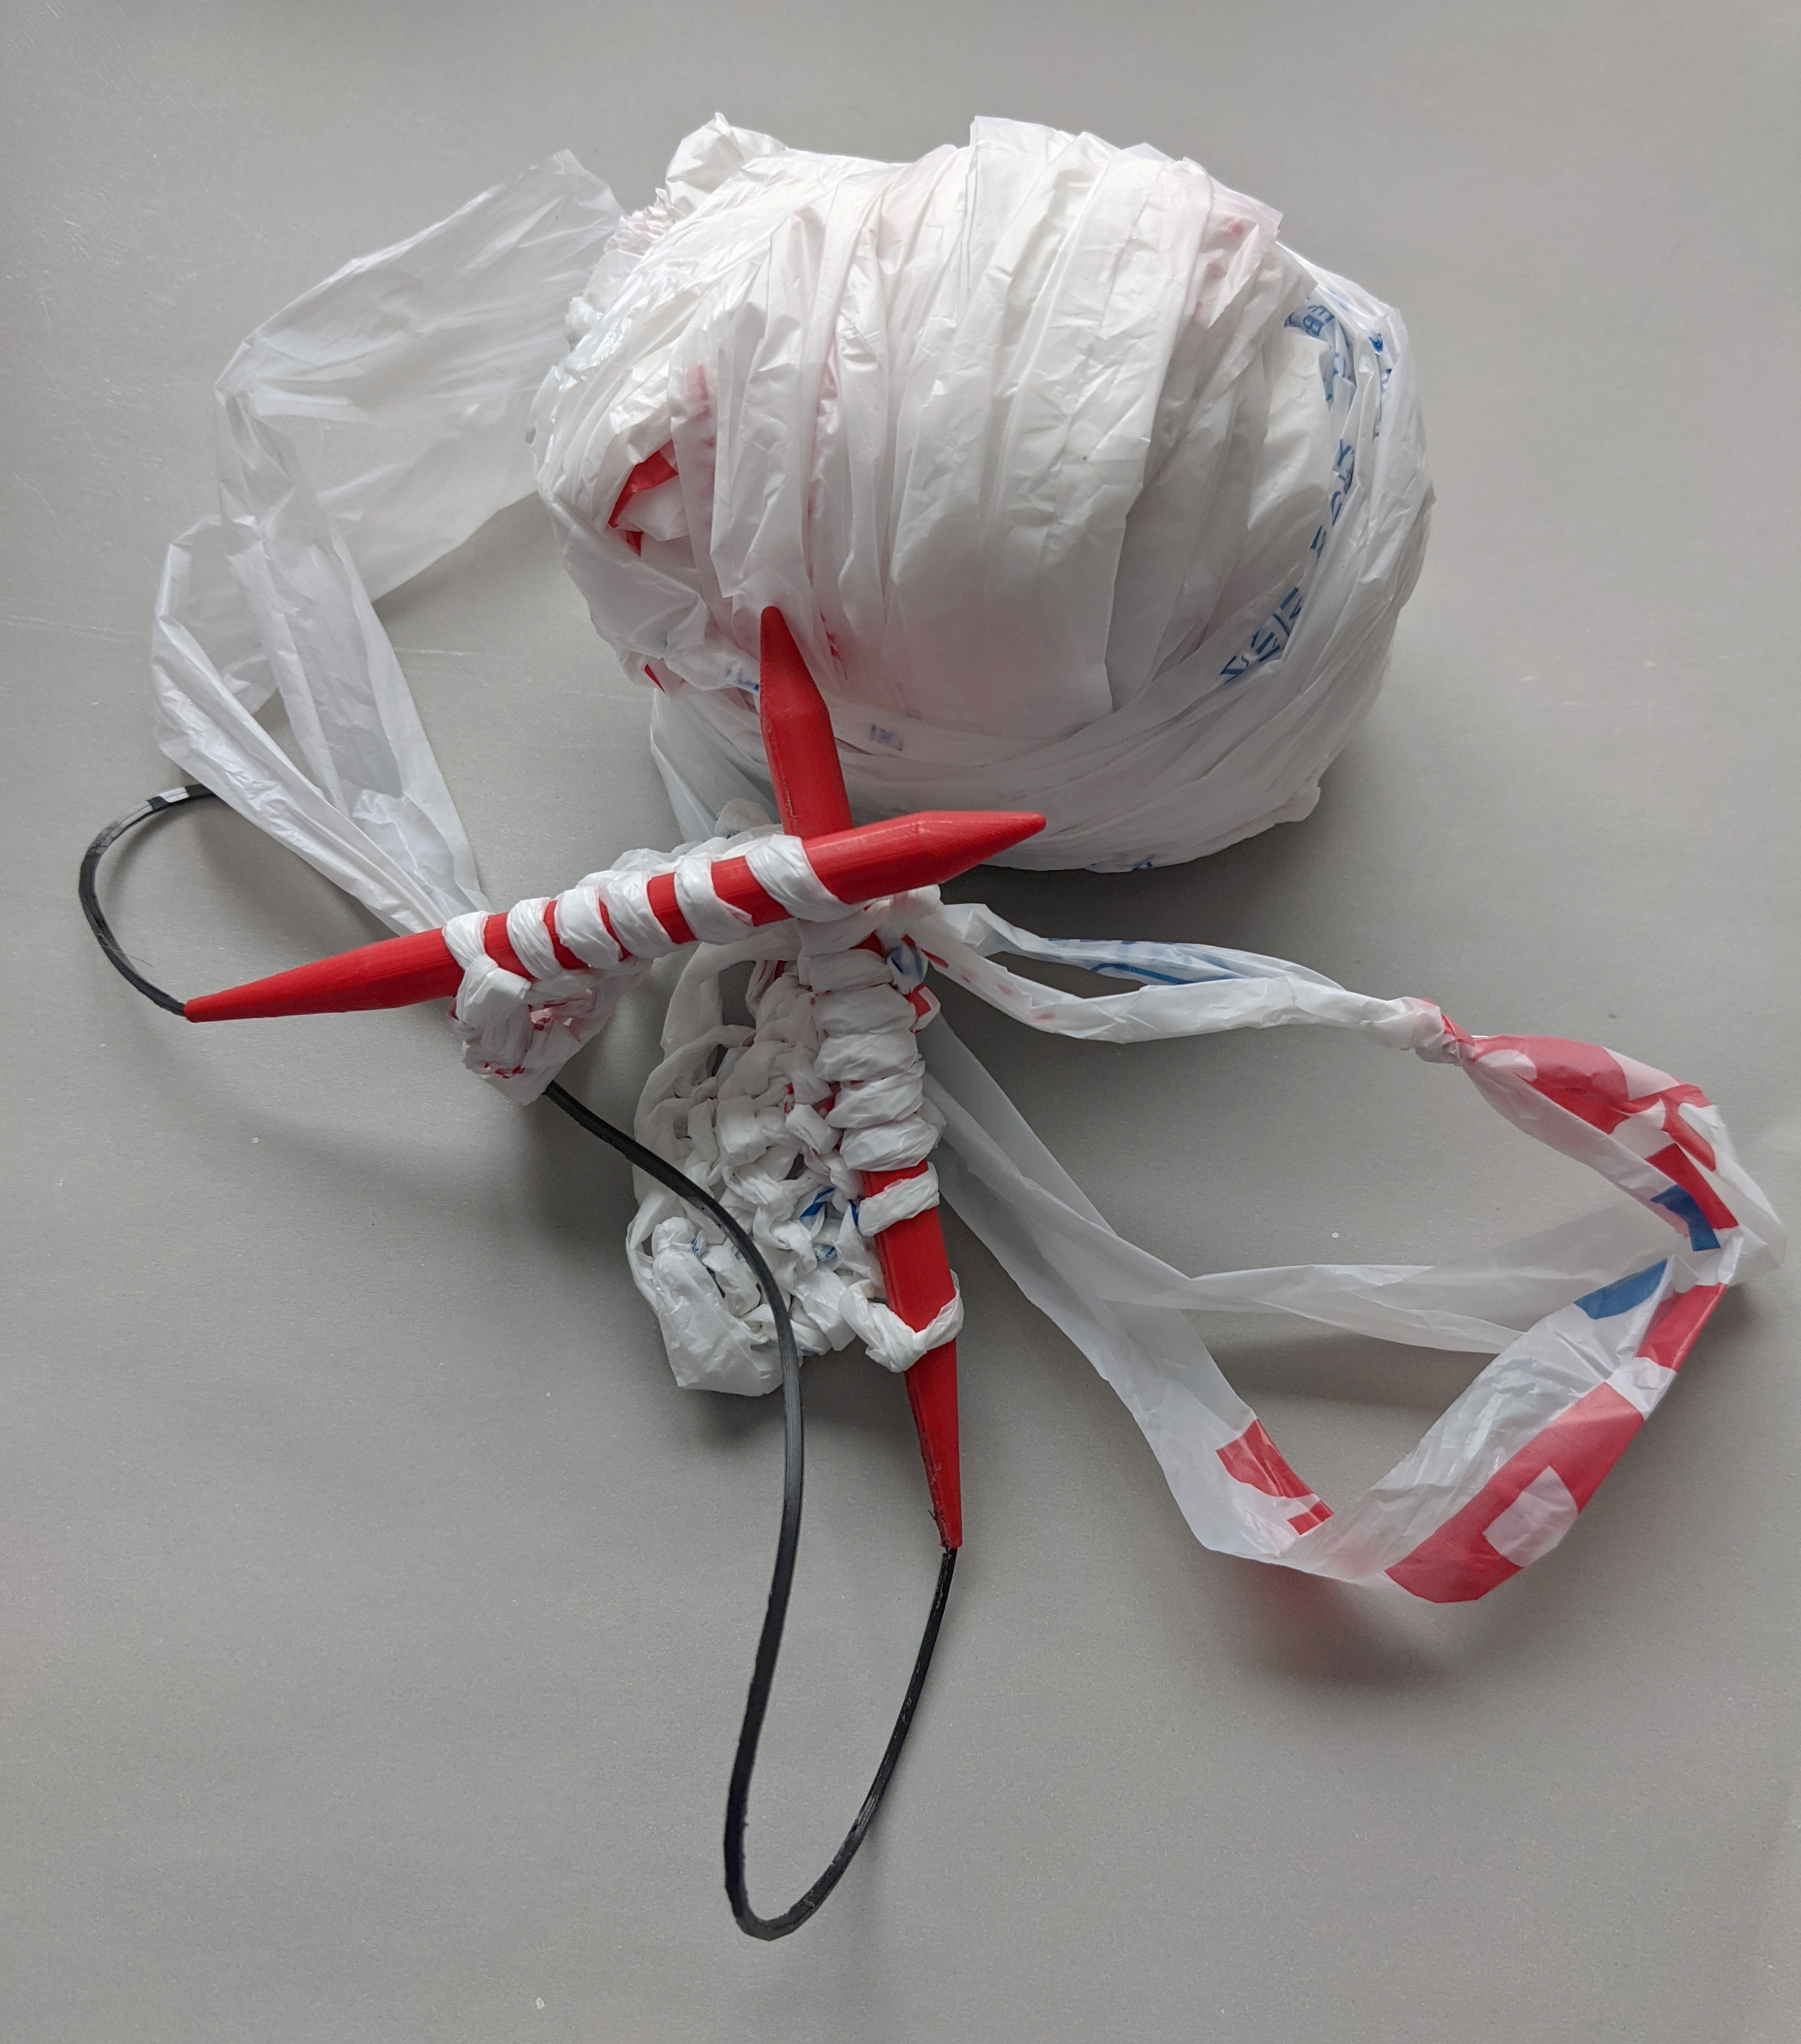 Knitting with Plastic Bags Maker Meetup